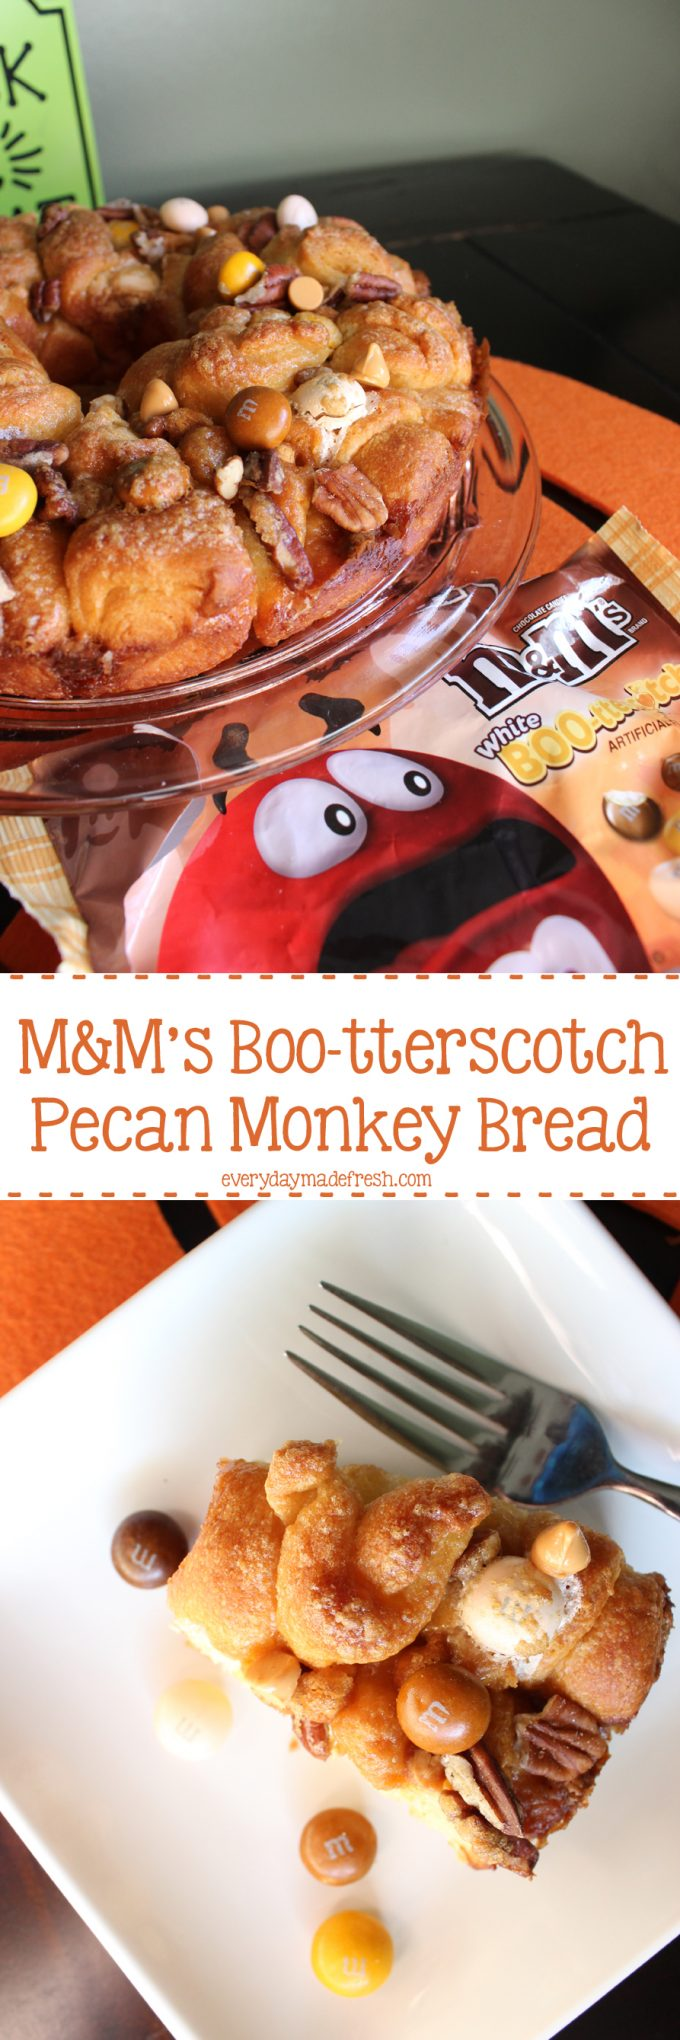 M&M's Boo-tterscotch Pecan Monkey Bread is sticky and sweet, and makes the perfect holiday treat! #SpookyTreats #ad | EverydayMadeFresh.com